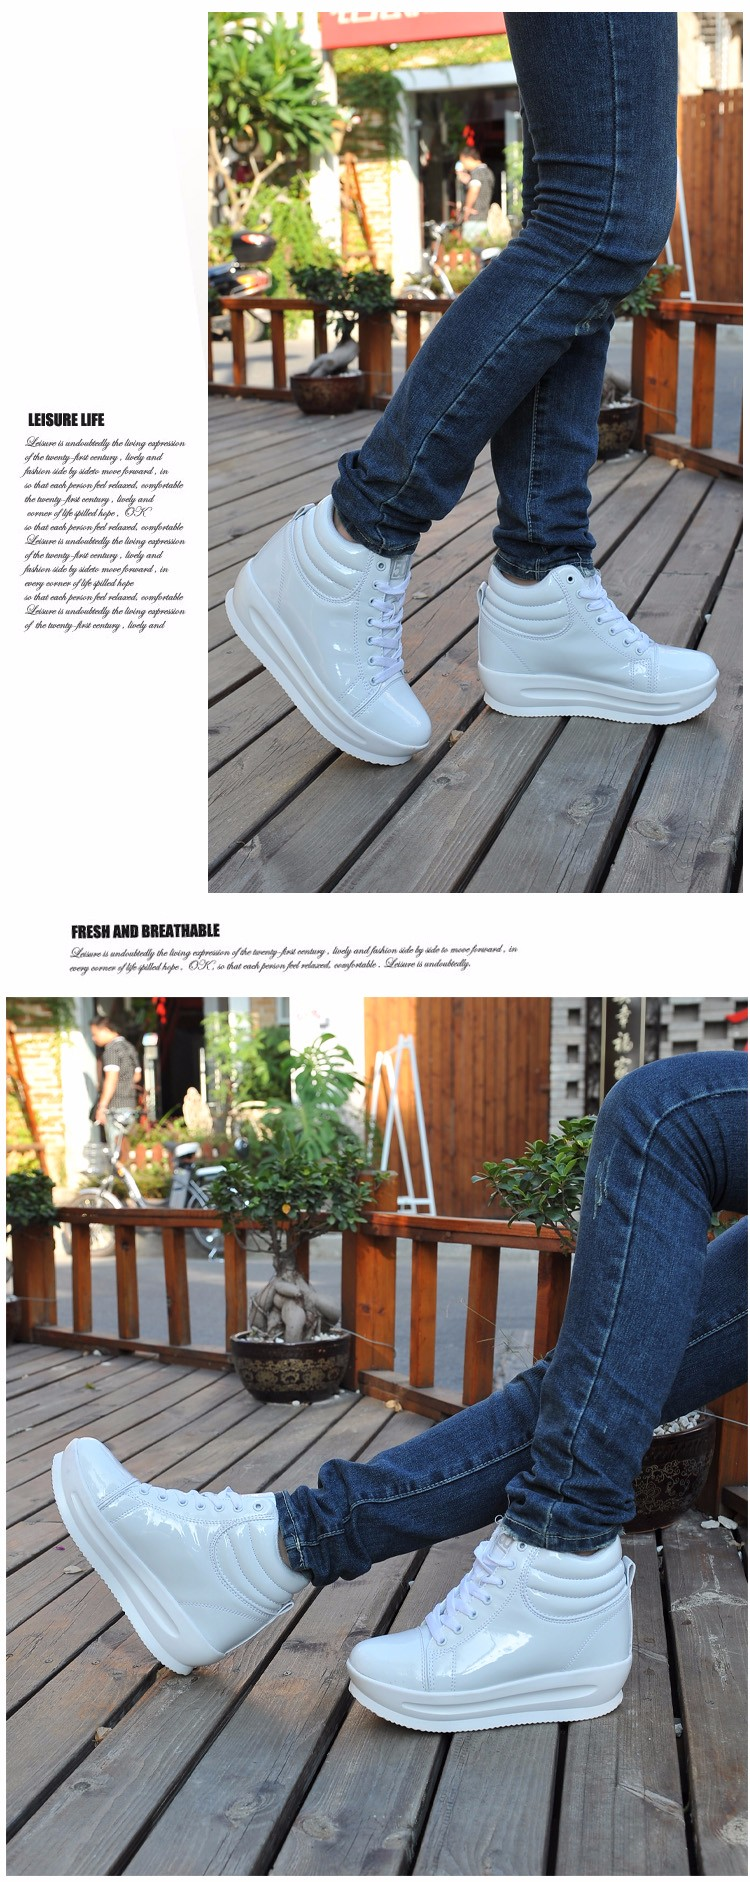 KUYUPP 2016 Fashion Hide Heel Women Casual Shoes Breathable Flat Platform Casual Women Shoes Patent Leather High Top Shoes YD105 (10)